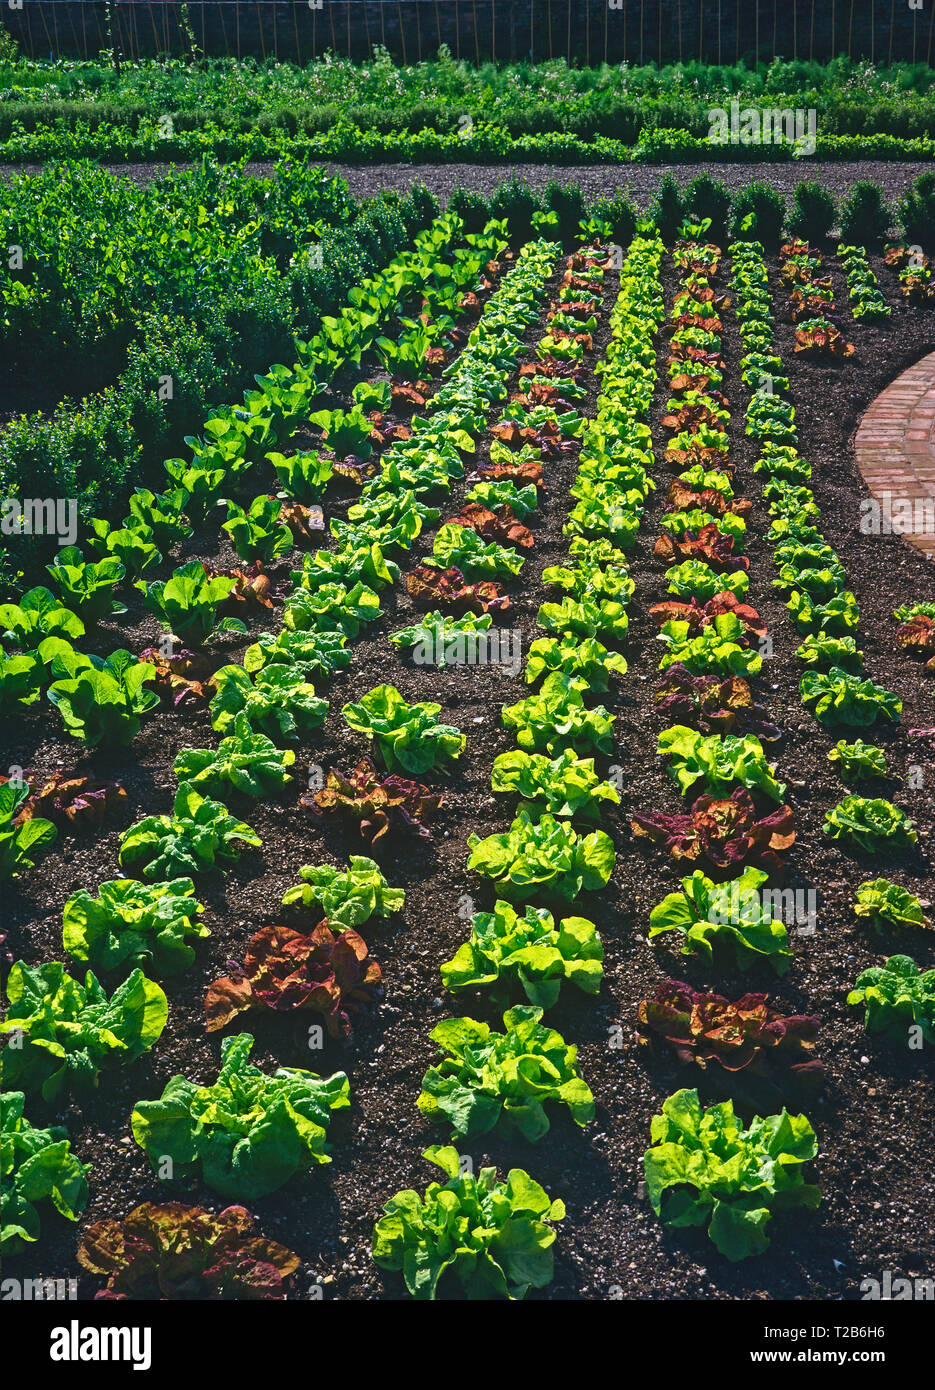 A large display of varieties of lettuce in the vegetable garden of a country house Stock Photo